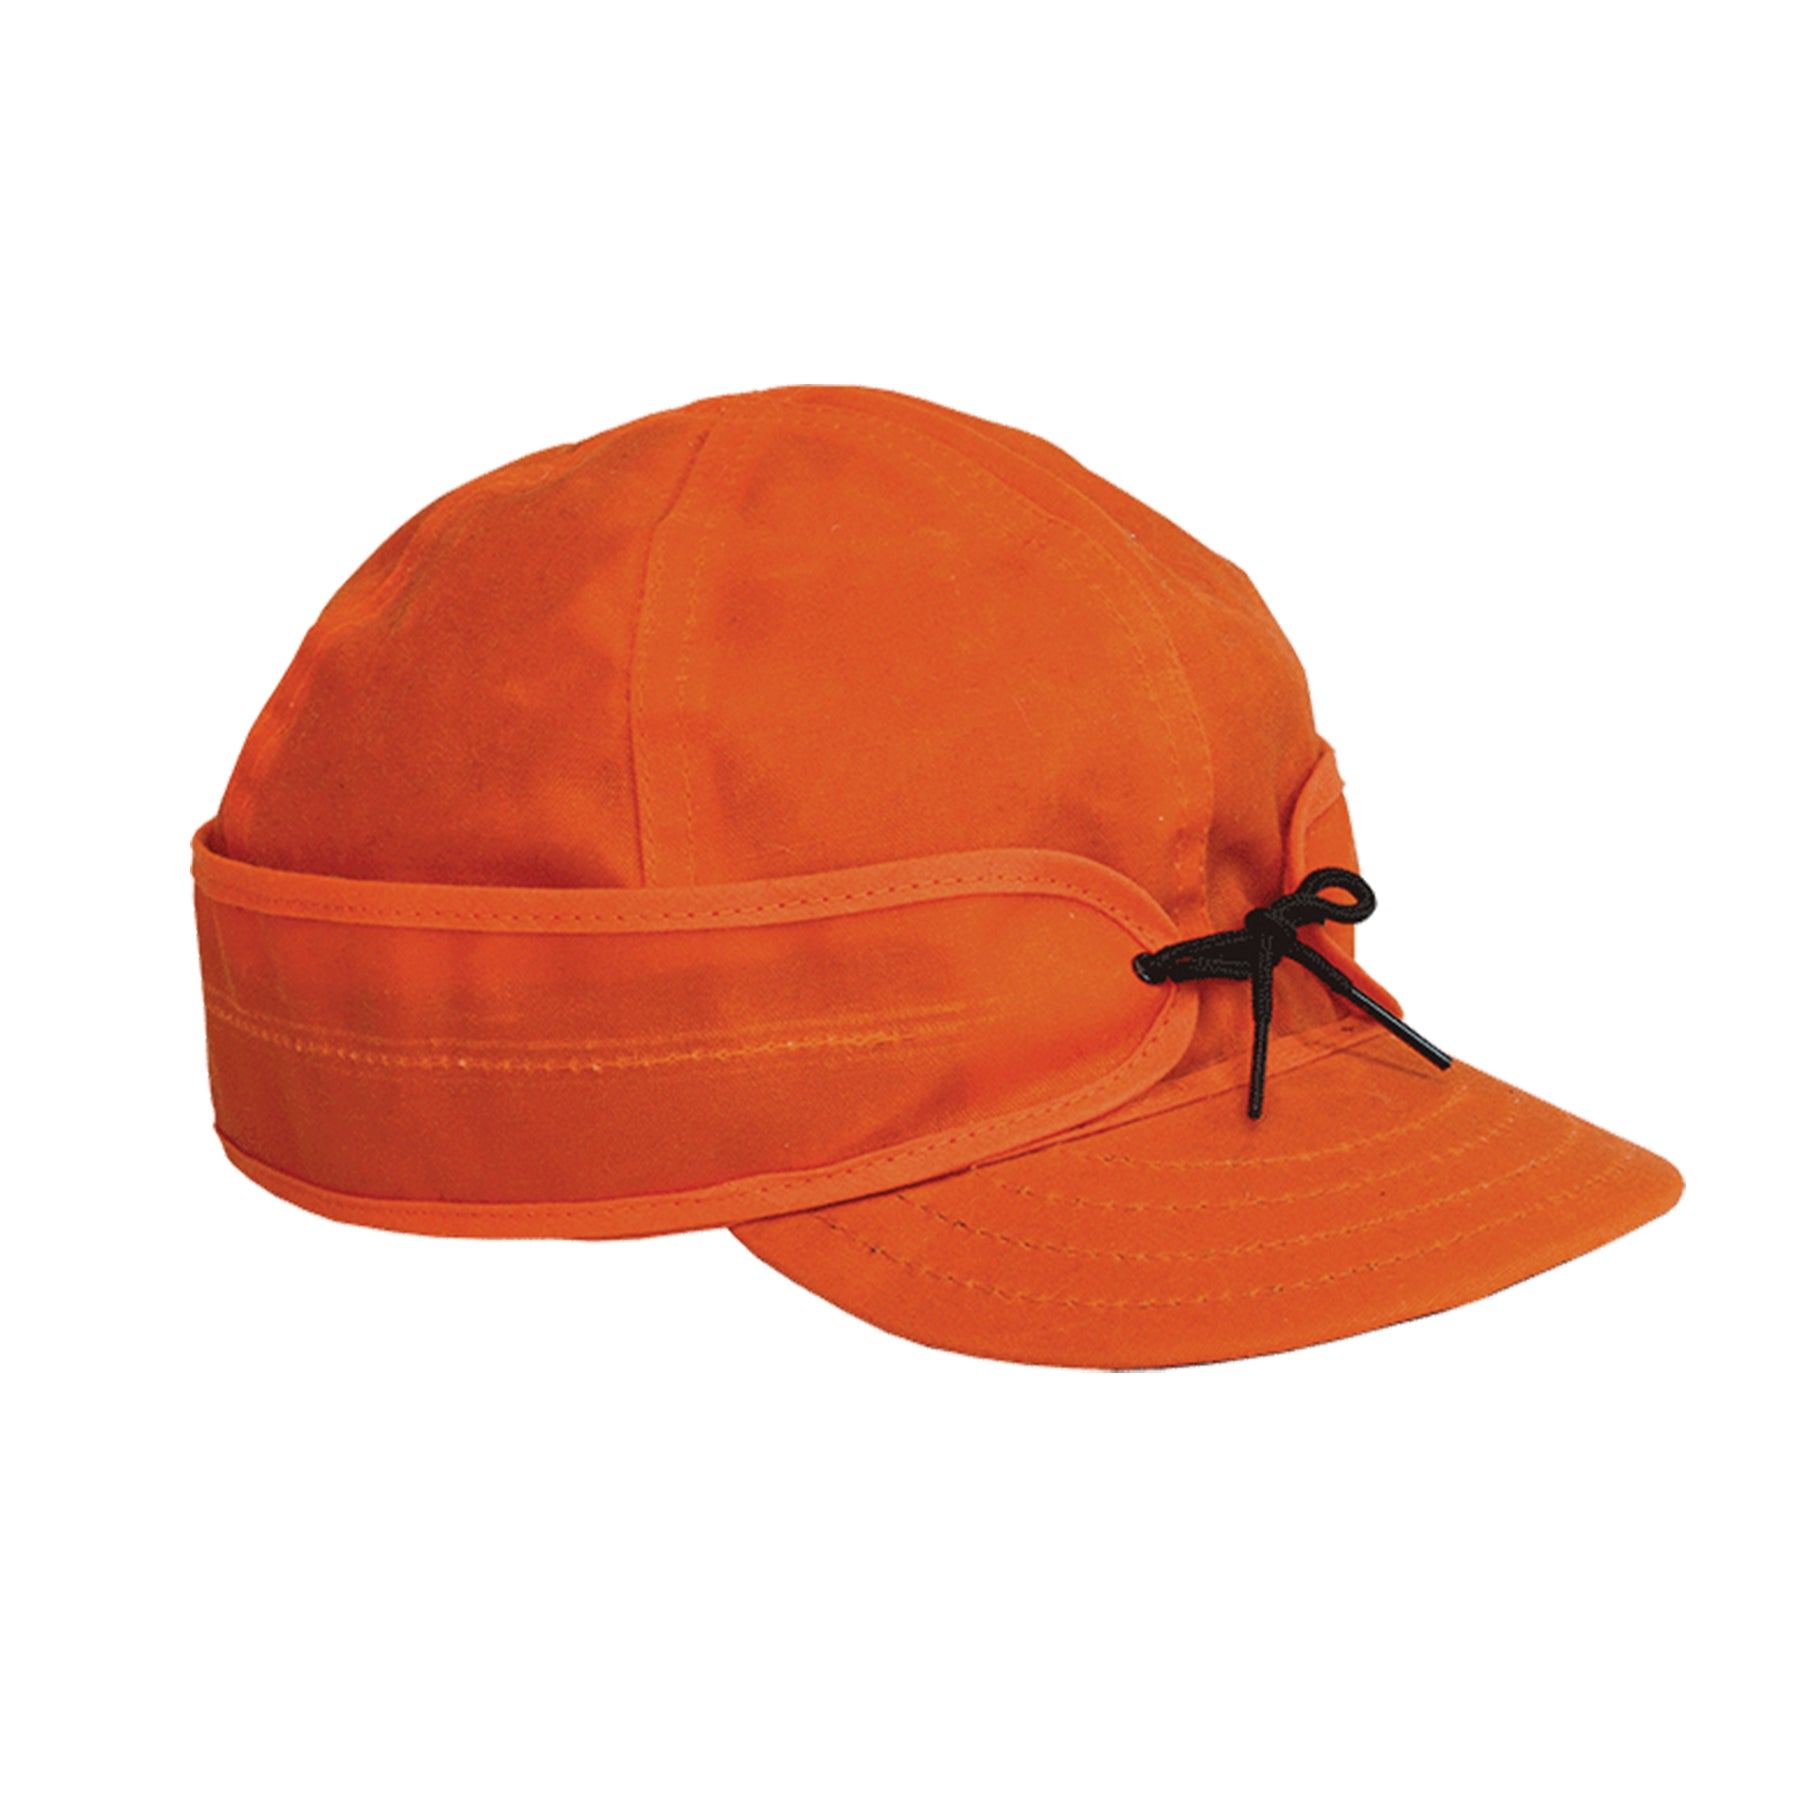 Stormy Kromer Waxed Cotton Cap - Blaze Orange